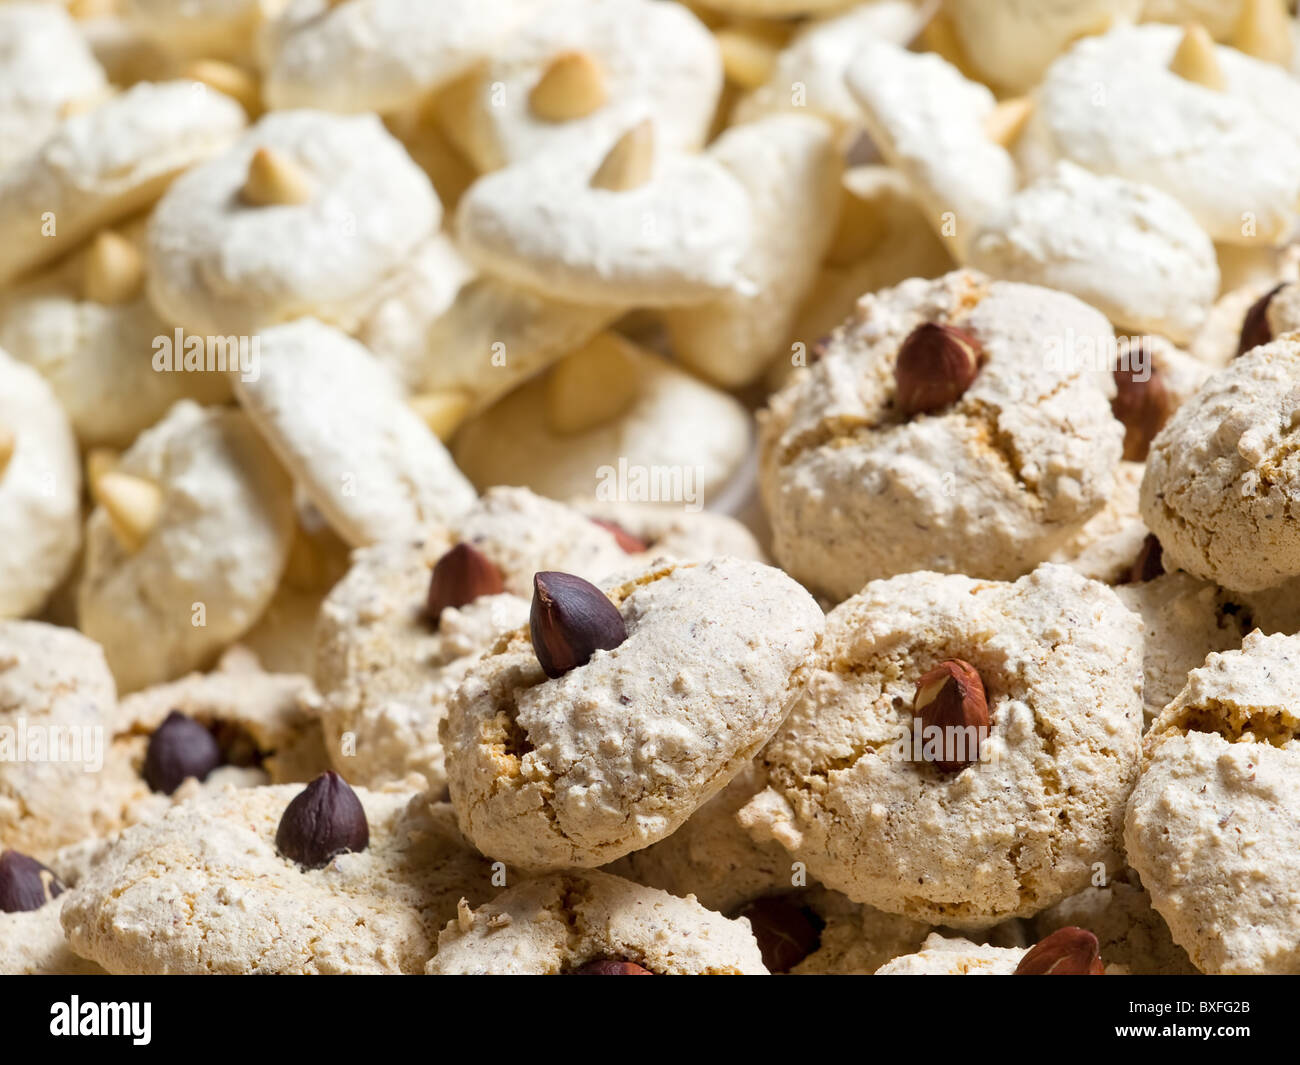 Closeup View Of Two Types Of Christmas Cookies Stock Photo 33533315